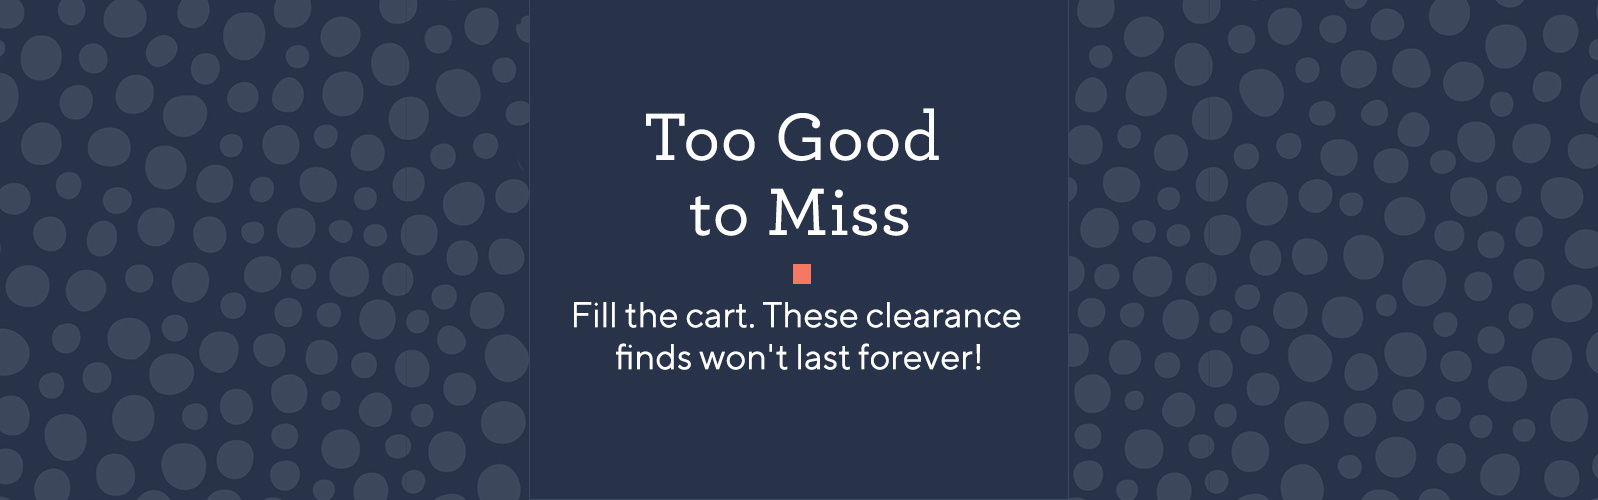 Too Good to Miss. Fill the cart. These clearance finds won't last forever!